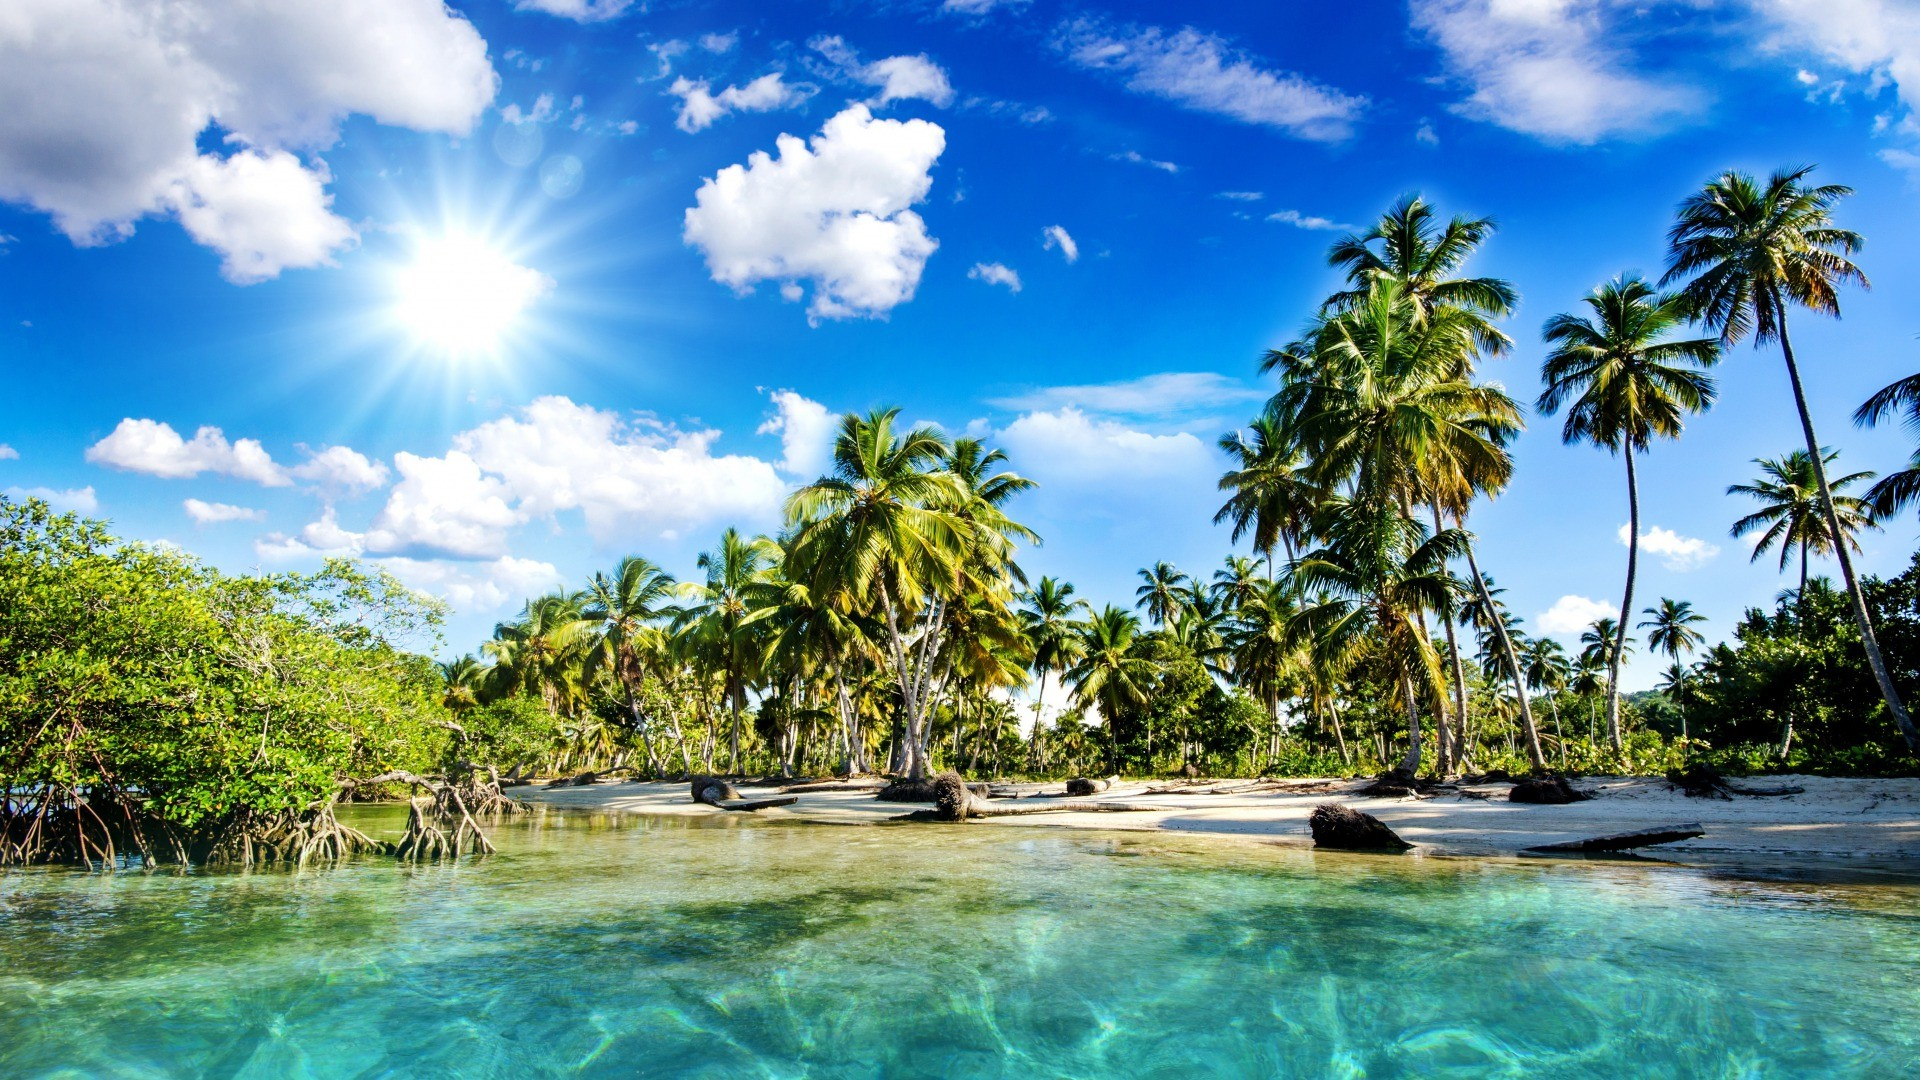 10 Best Tropical Beach Desktop Backgrounds Full Hd 1920: Tropical Beach Wallpaper Desktop ·① WallpaperTag